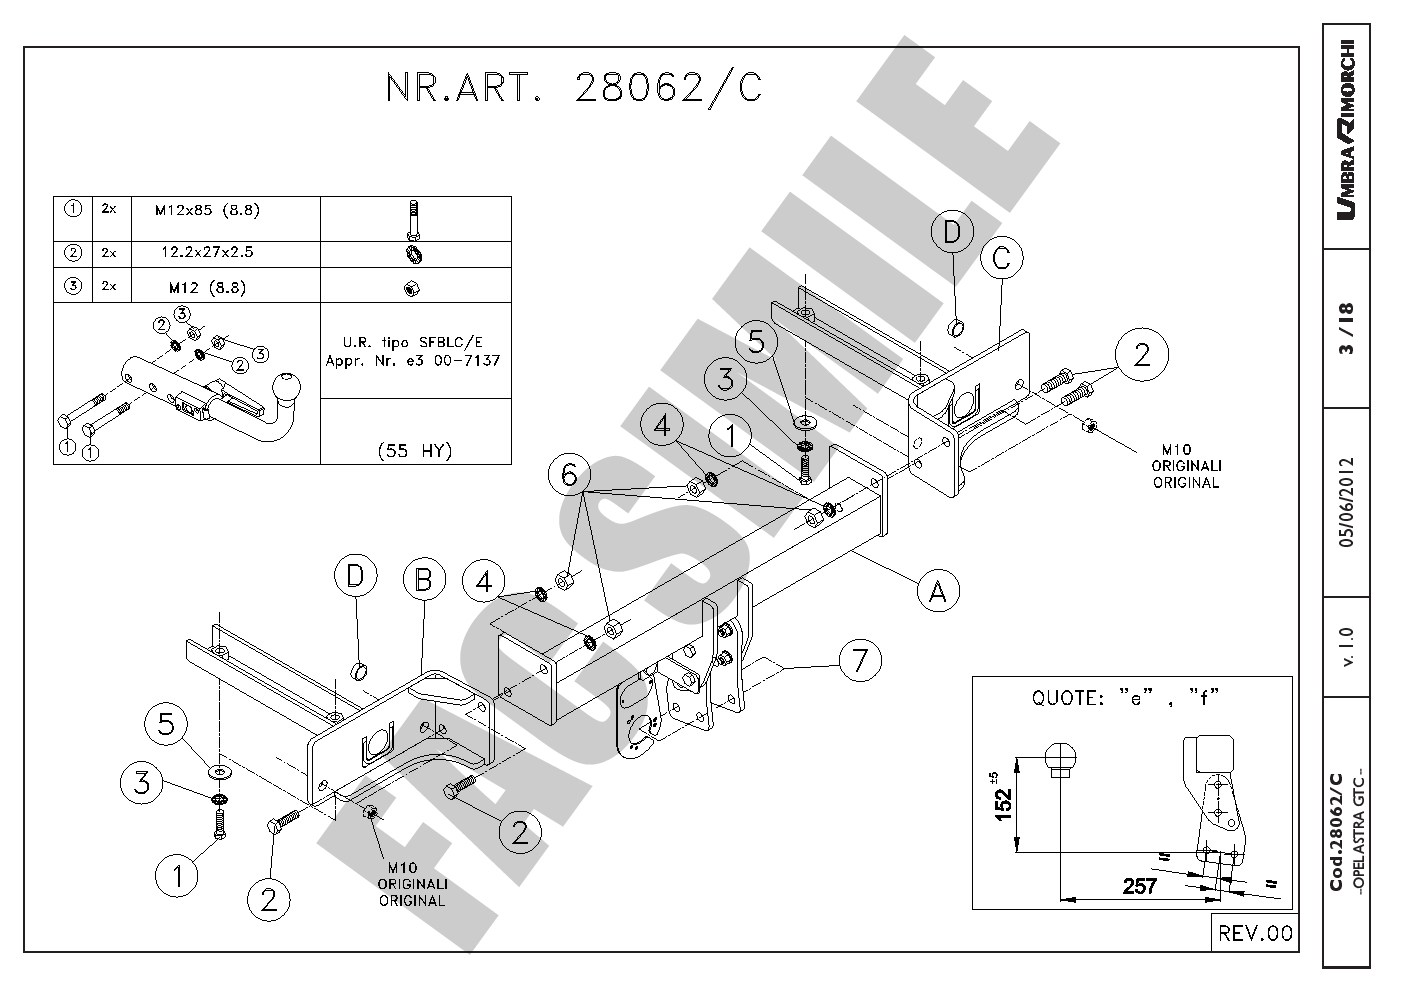 vauxhall vectra towbar wiring diagram mitsubishi pajero for radio c schematic library best